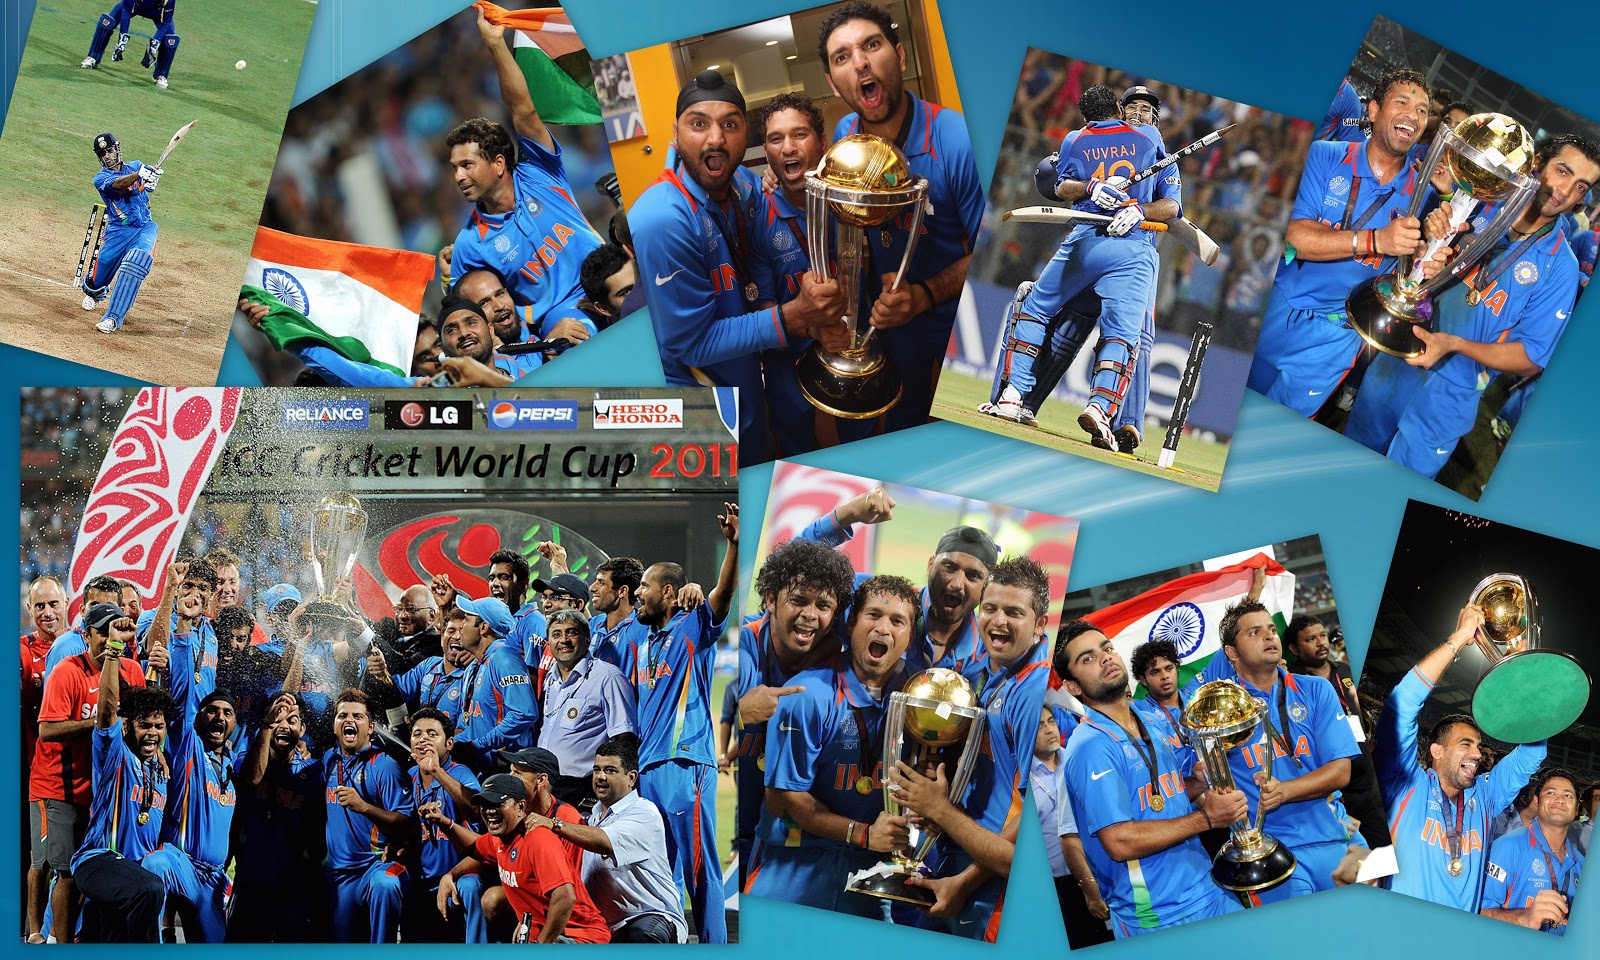 world cup 2011 India defeated sri lanka by six wickets to win the 2011 cricket world cup on saturday in mumbai (scroll down for video highlights and photos) the victory marked india's first cricket world cup title in 28 years and followed an historic semifinal match against archrival pakistan india was also.